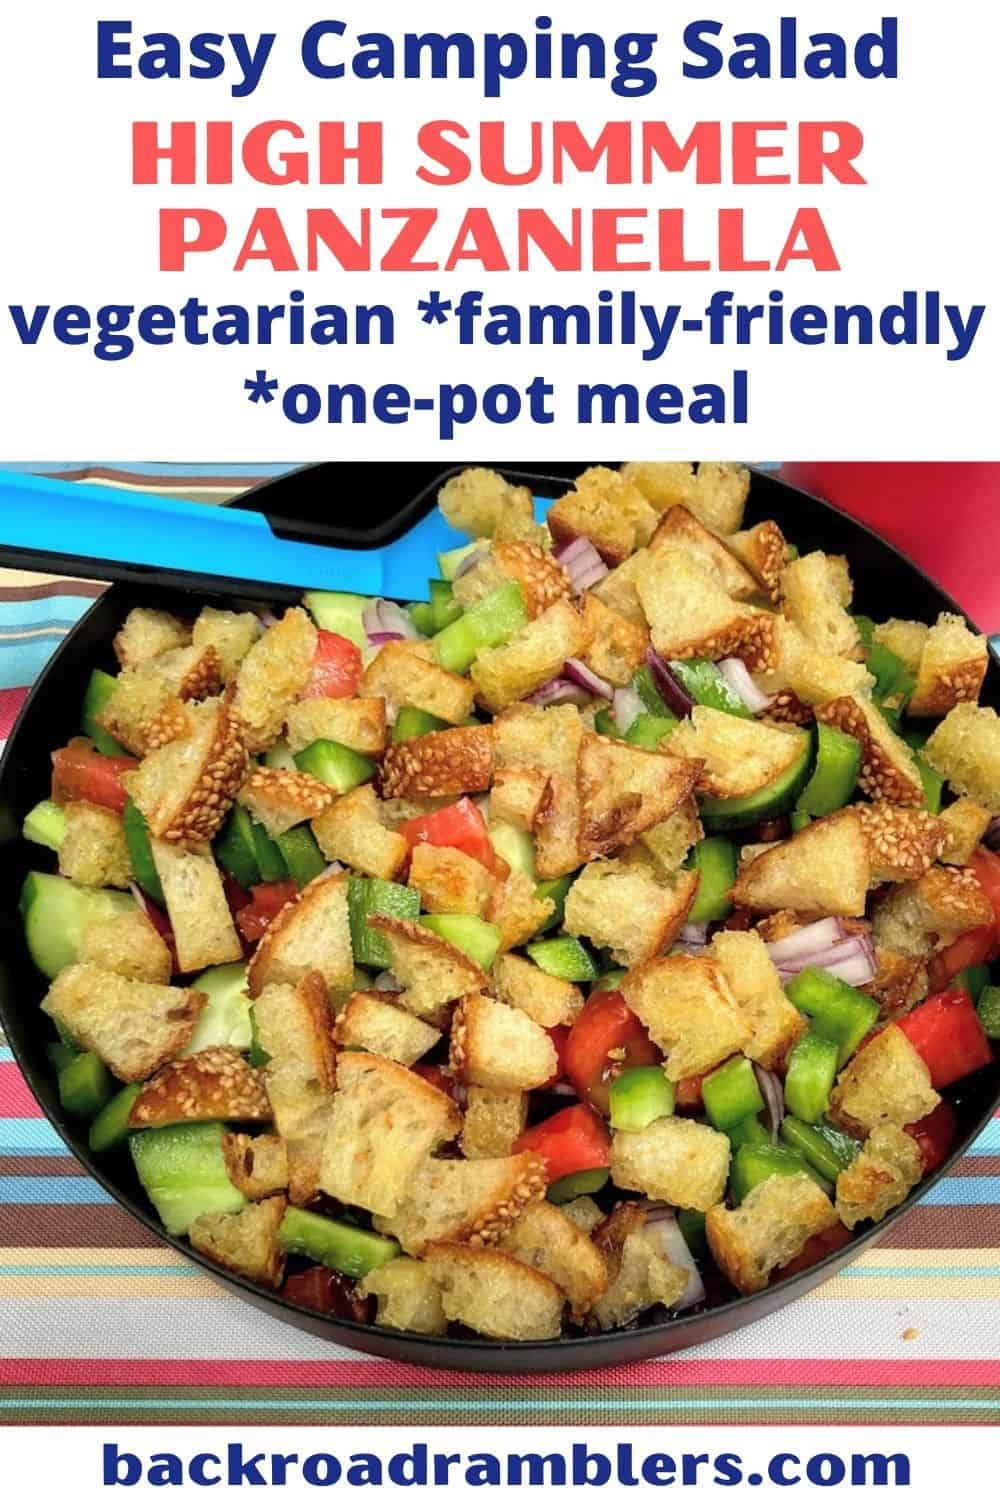 A photo of panzanella, an easy camping salad. Text overlay: Easy camping salad - High Summer Panzanella. Vegetarian, family-friendly, one-pot meal.